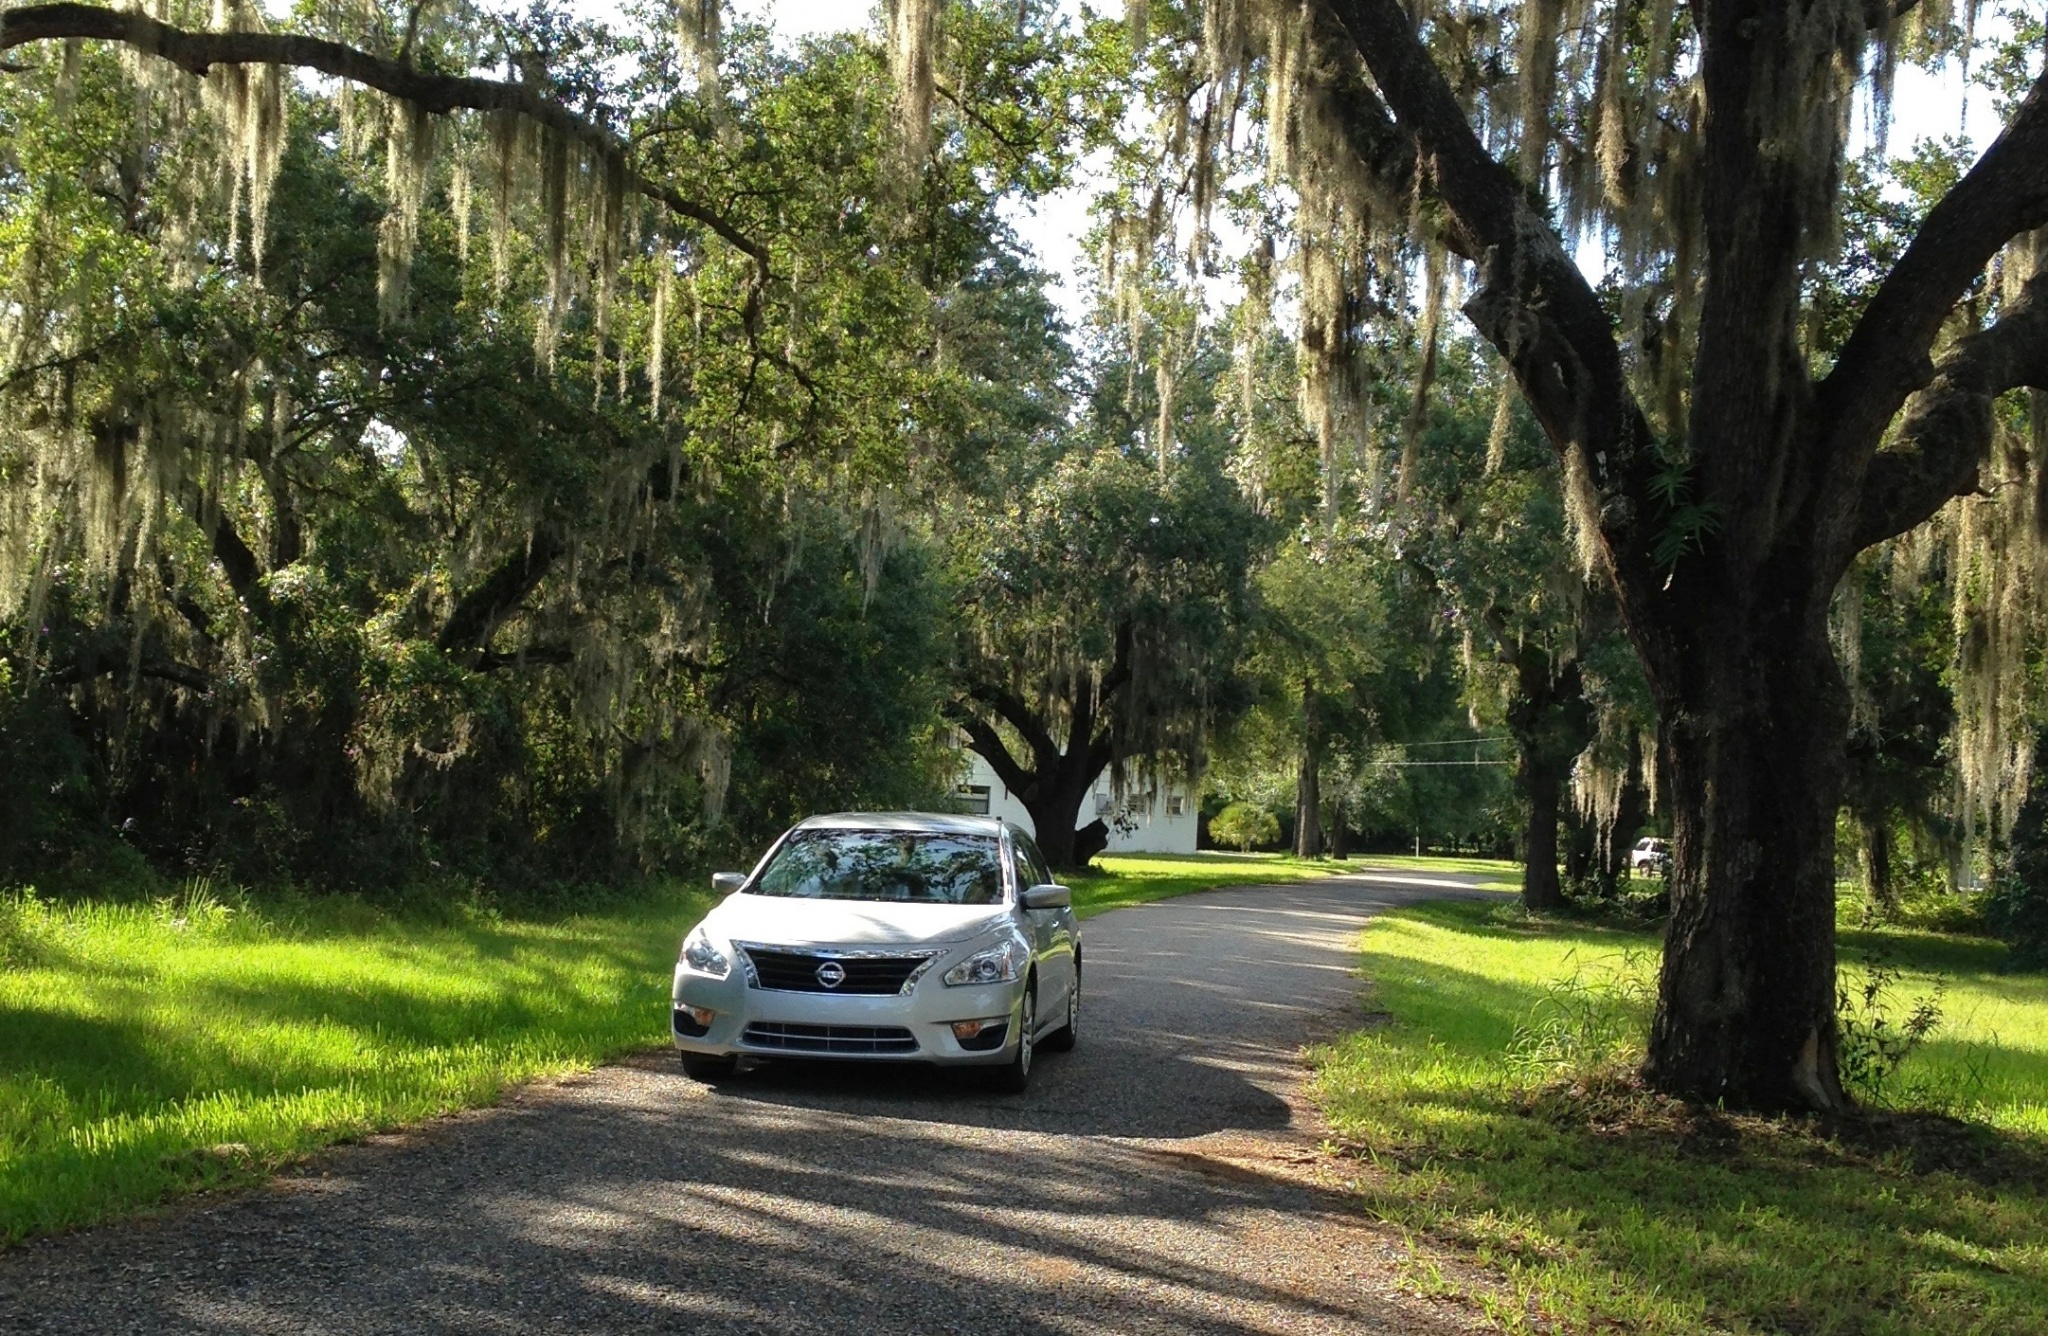 car on a road with spanish moss covered trees